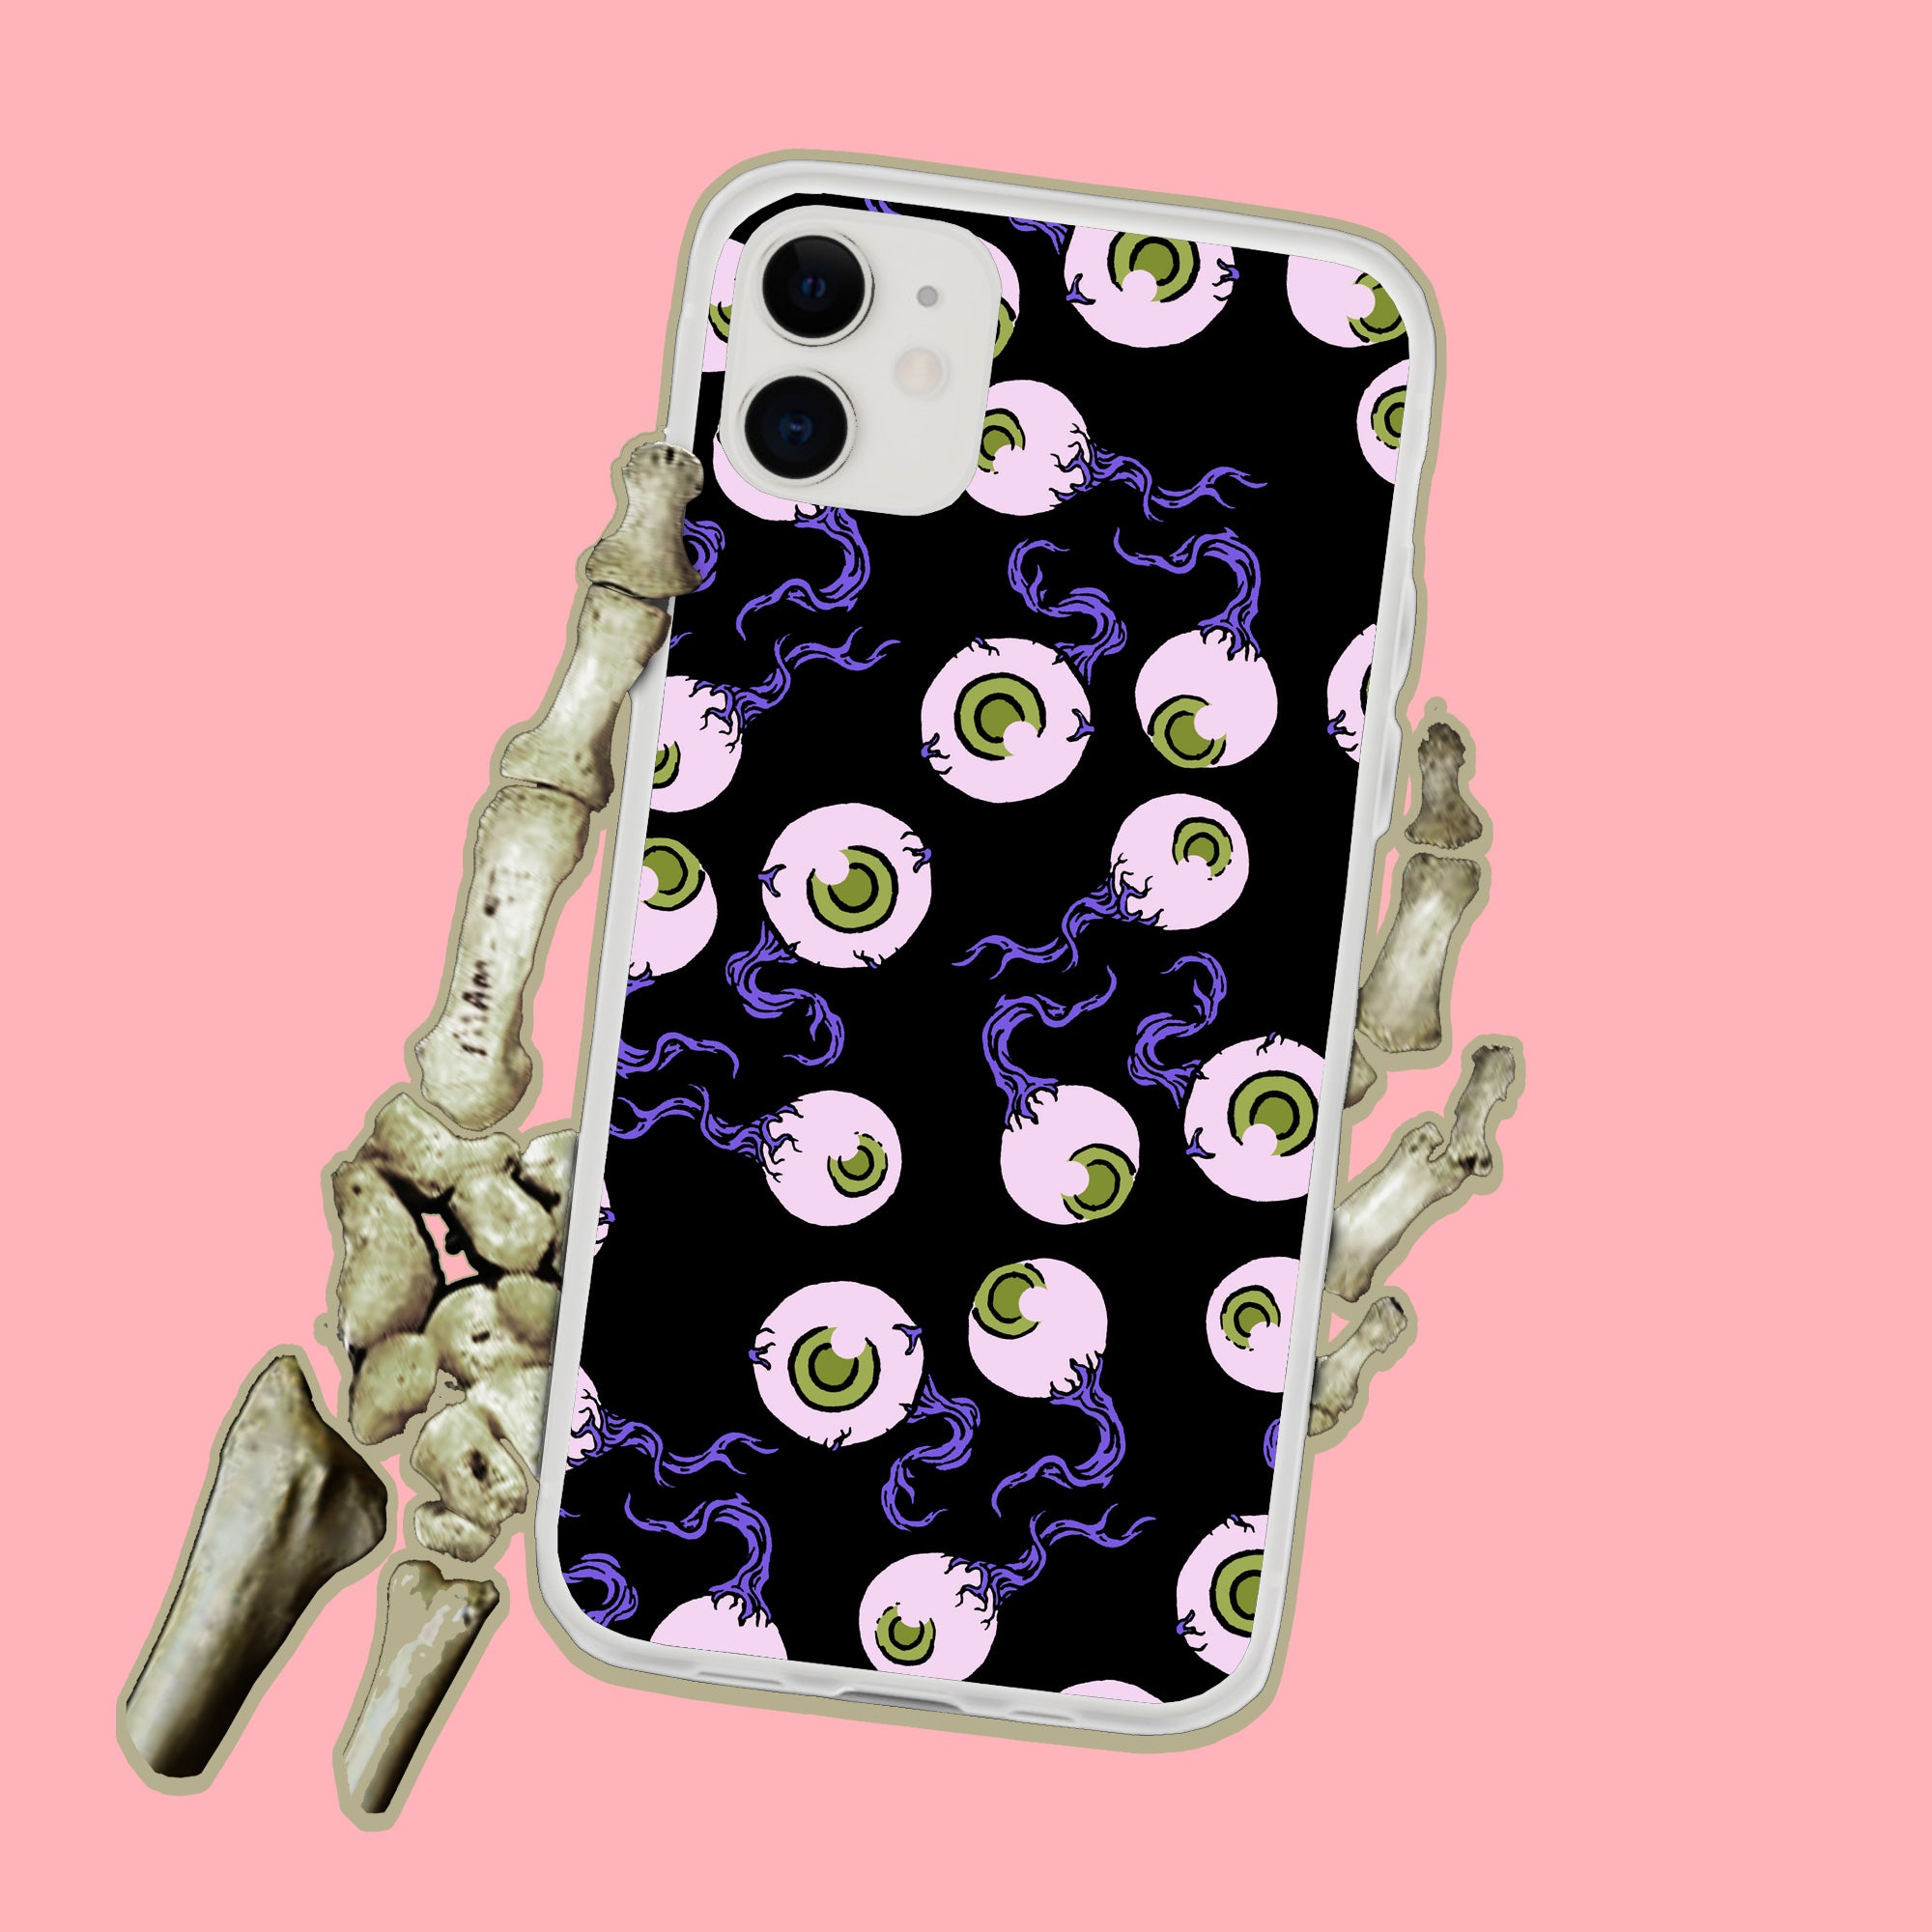 Spooky Eyeballs iPhone Case